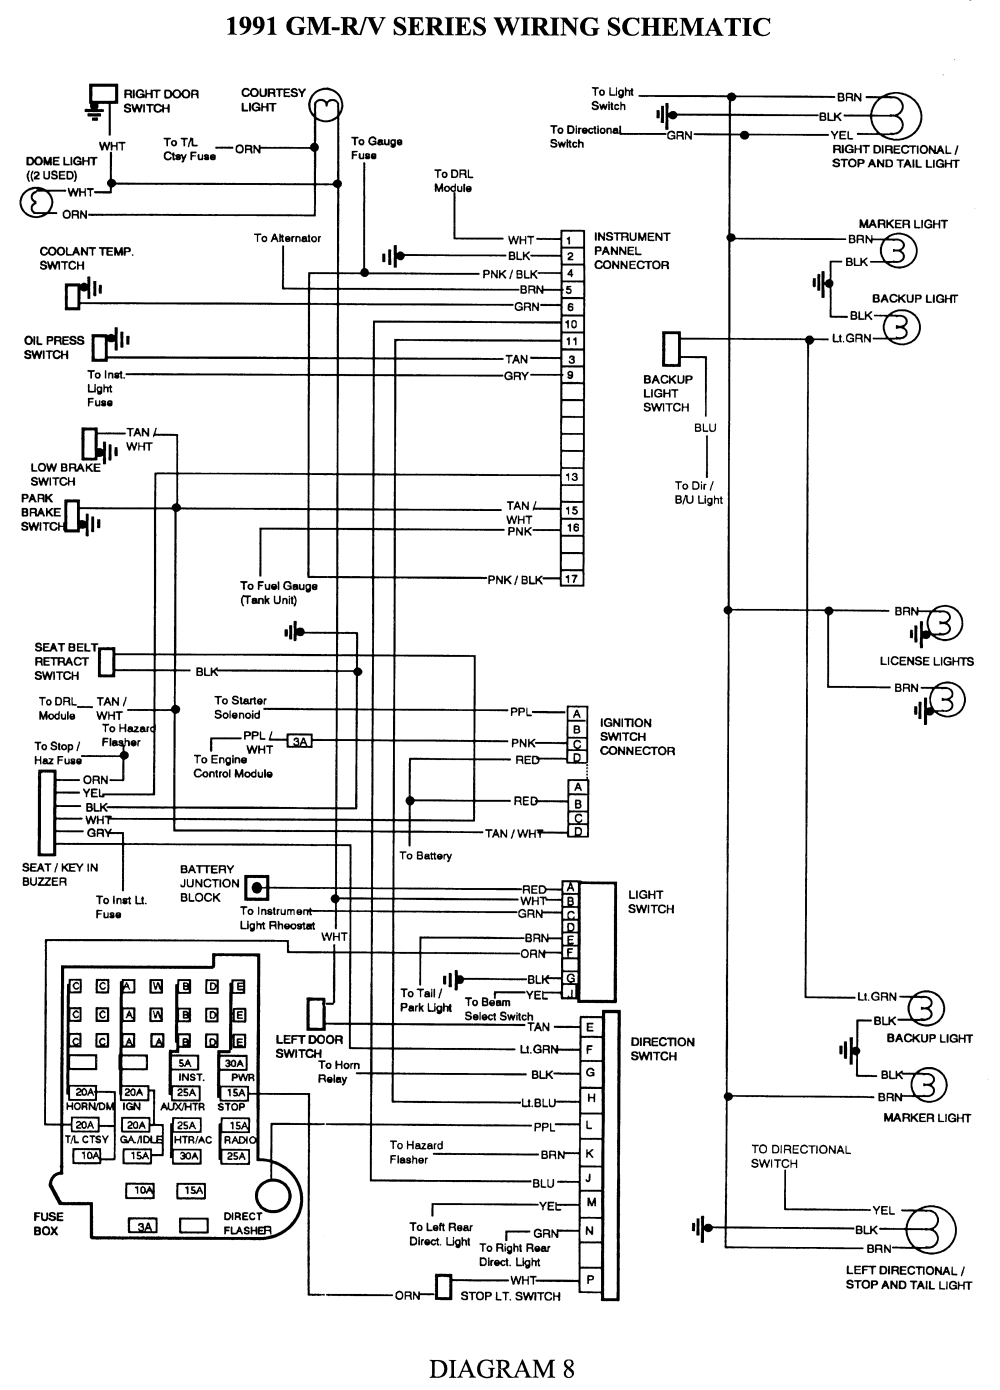 1990 Chevy Blazer Wiring Diagram -Gibson Es 335 Wiring Harness | Bege Place Wiring  DiagramBege Place Wiring Diagram